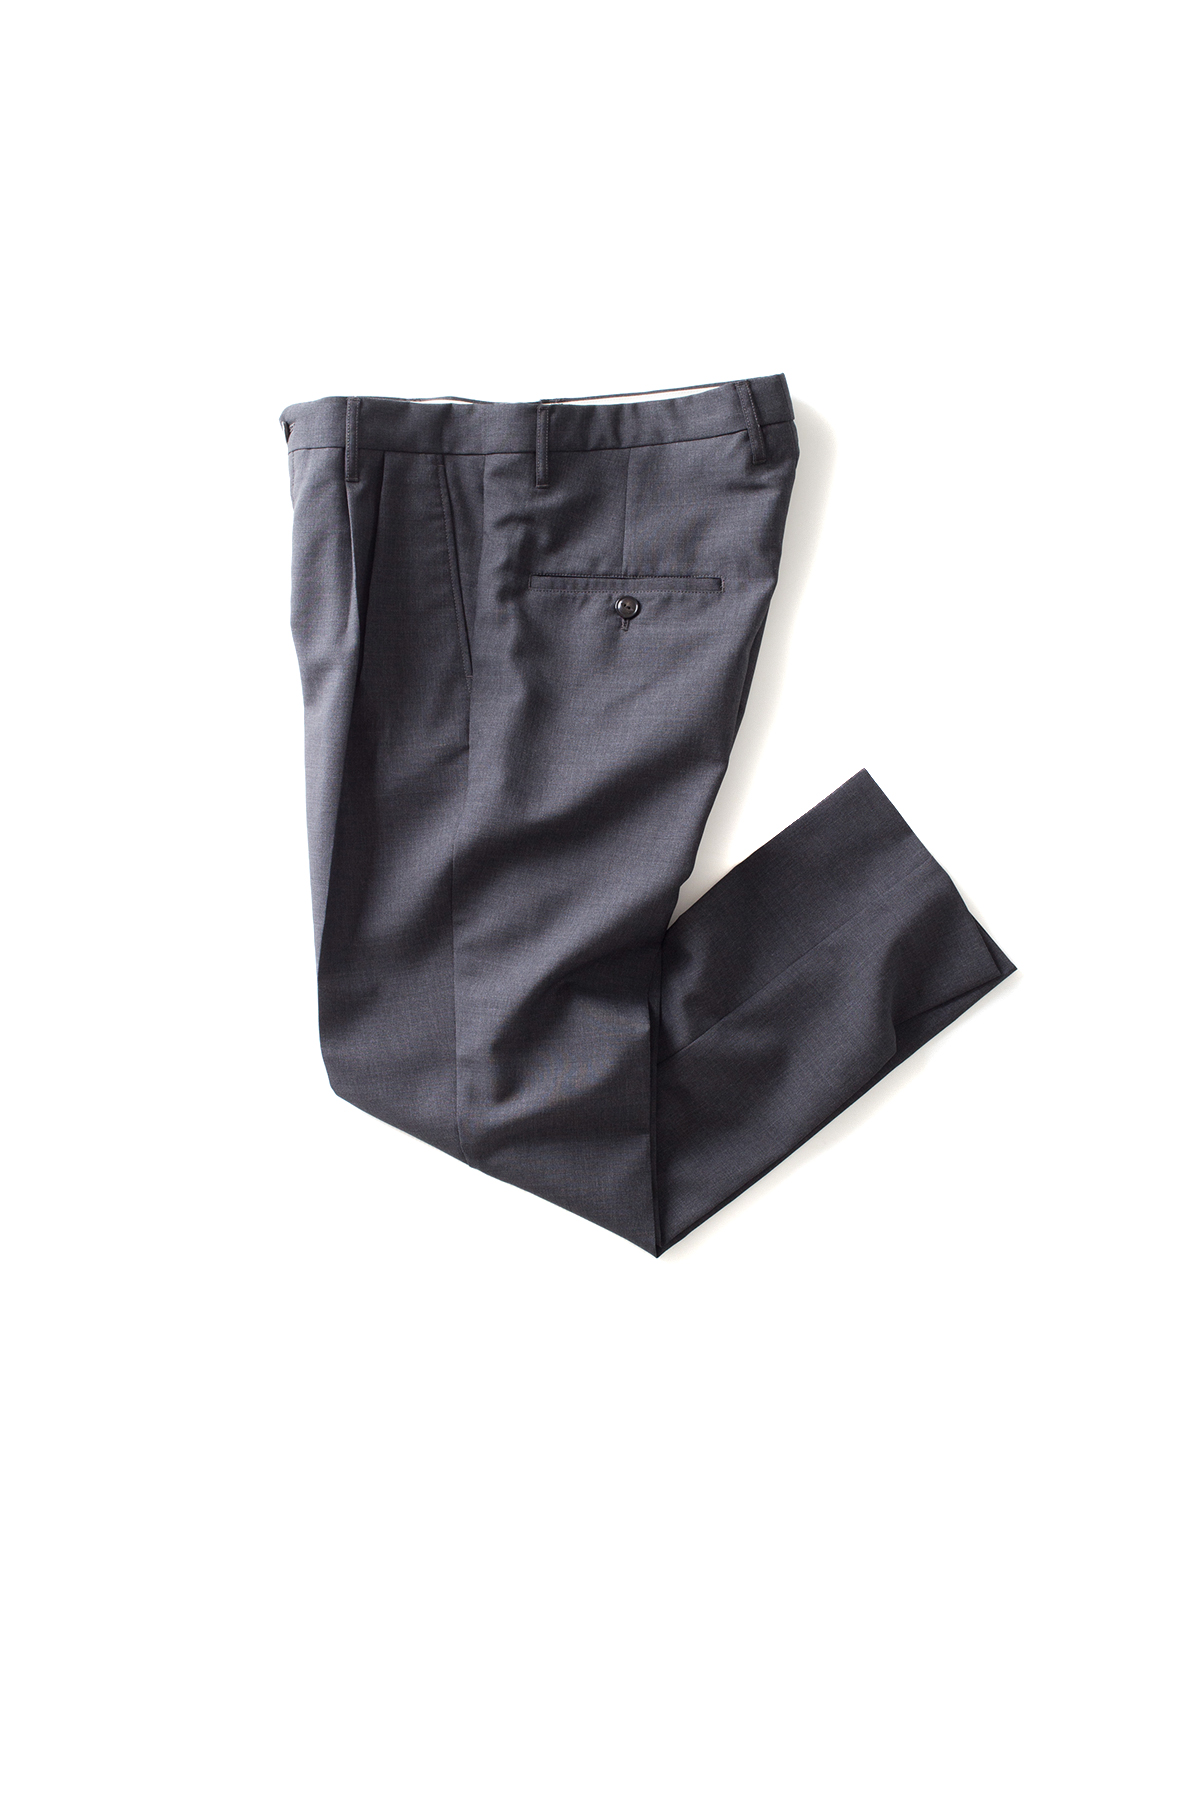 Name : Wool Mohair Tropical Tapered Trousers (Charcoal)